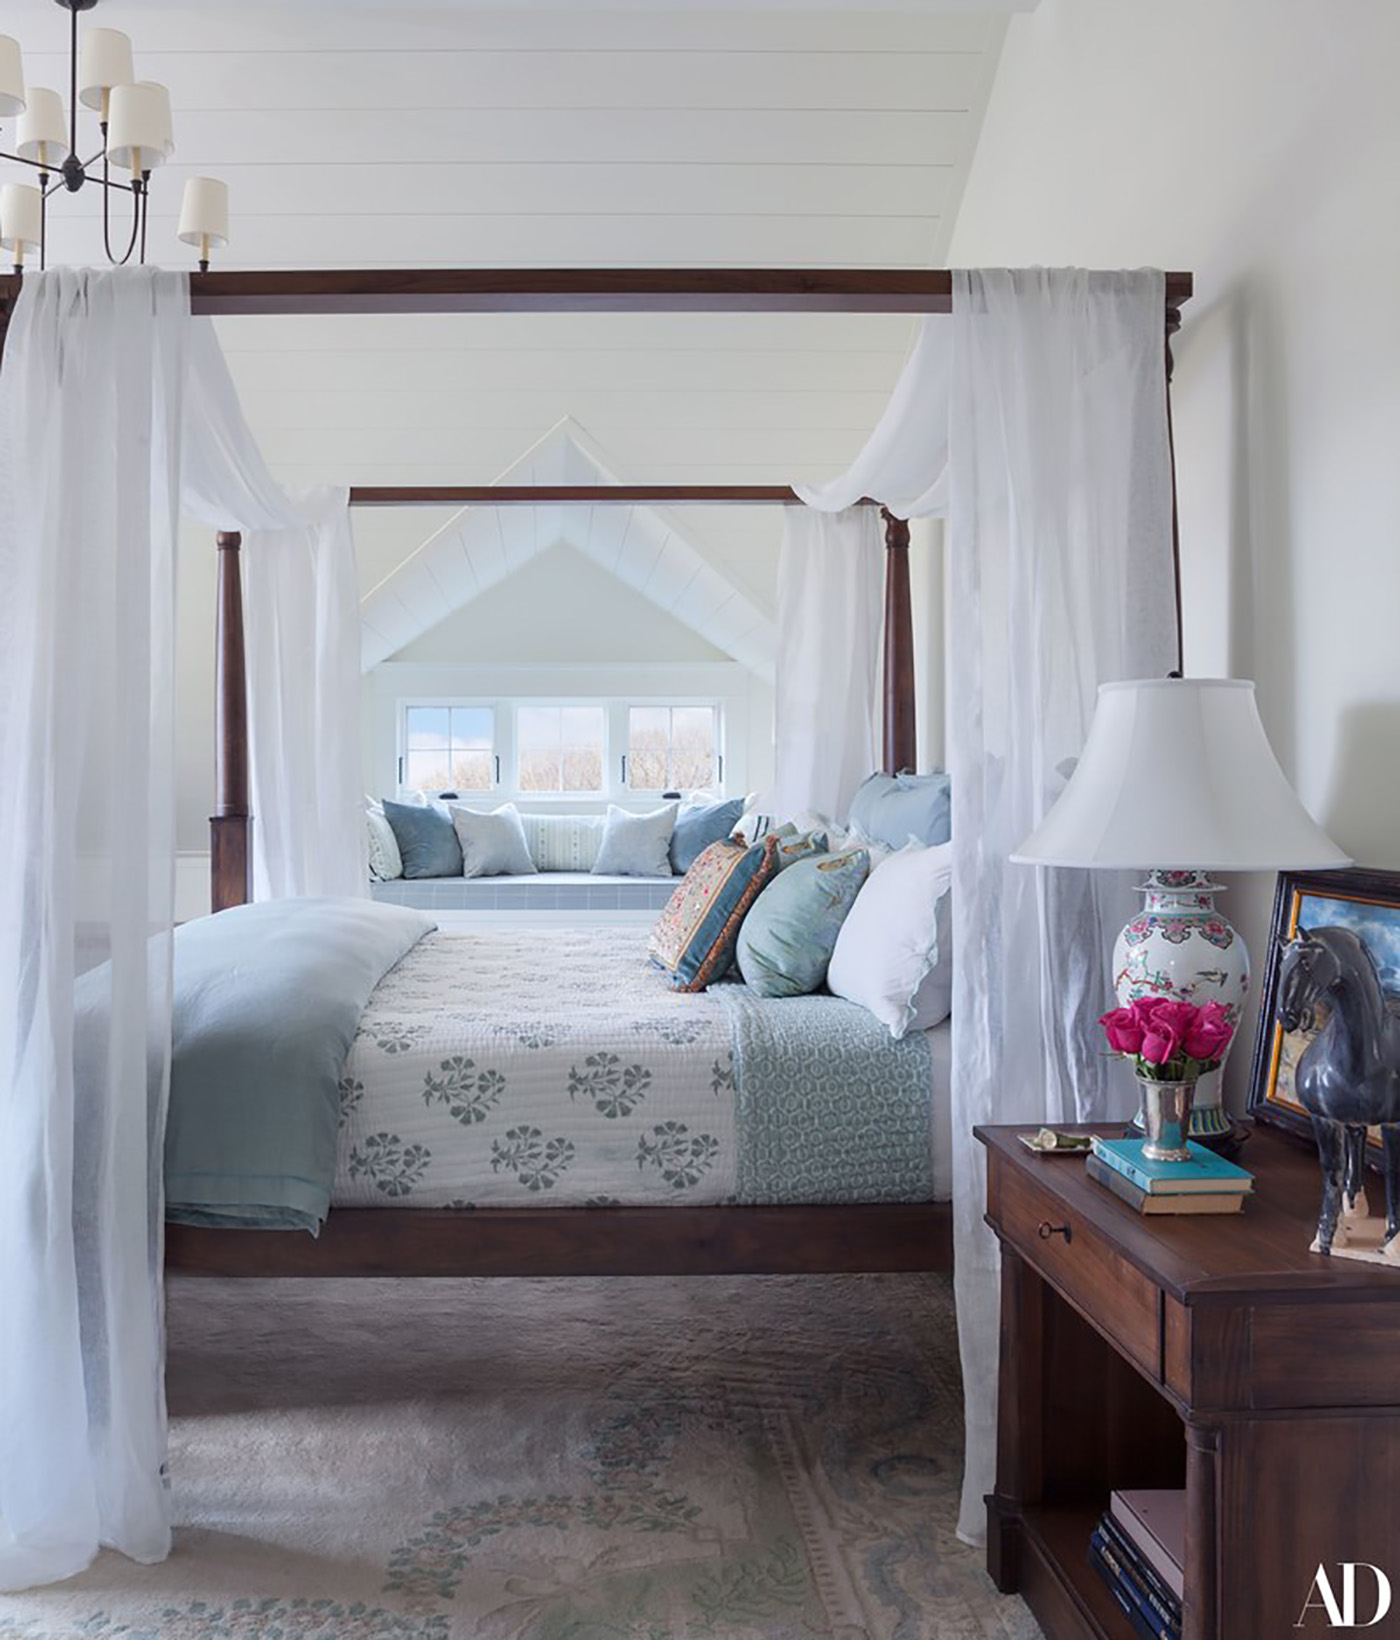 Vacation home inspiration - A Dreamy Vacation Home featured by popular DC lifestyle blogger, Monica Dutia